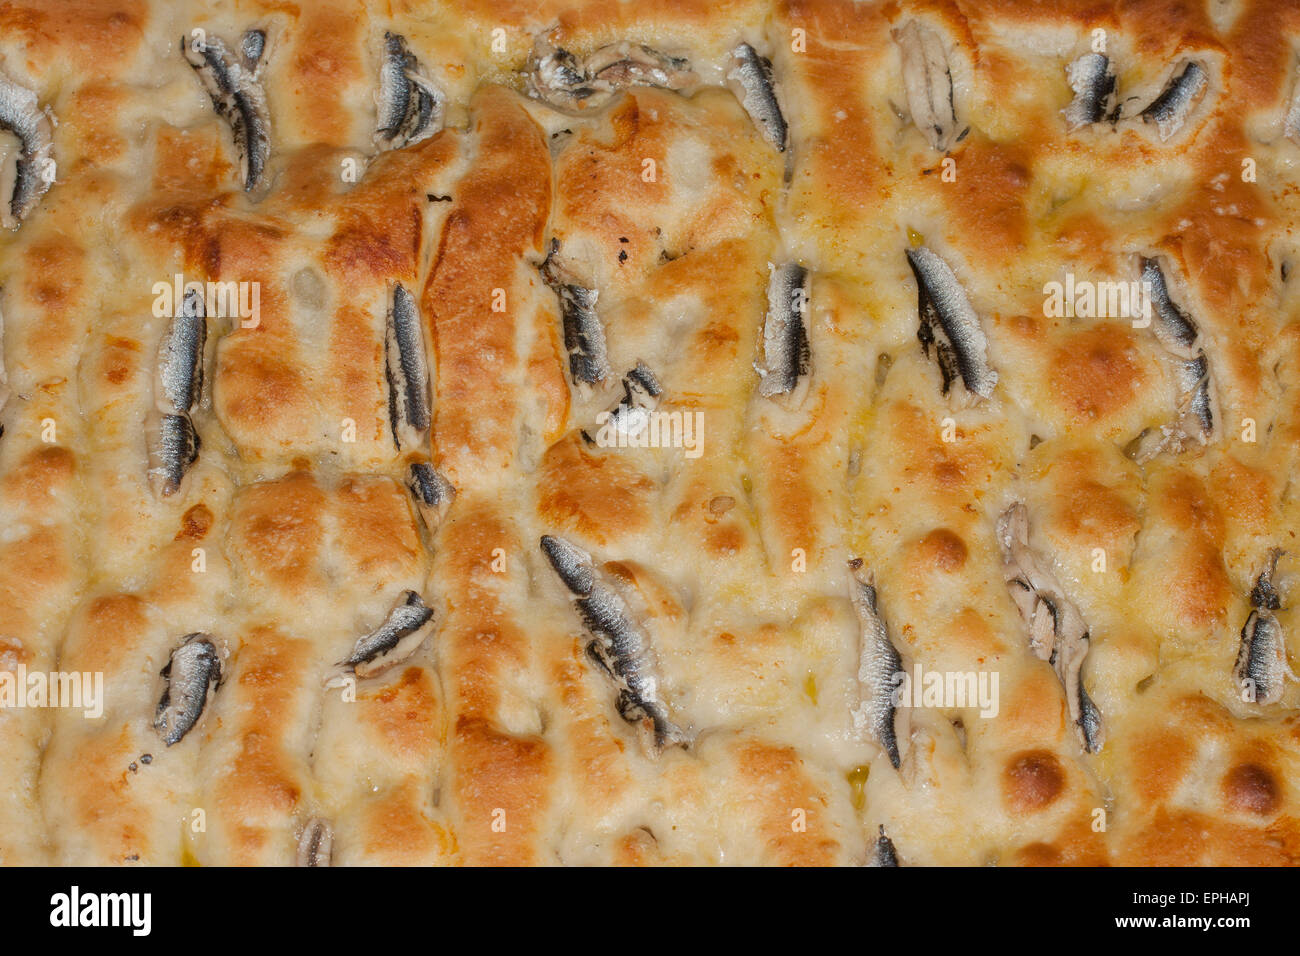 focaccia with anchovies, new type of ligurian focaccia, italian typical food - Stock Image